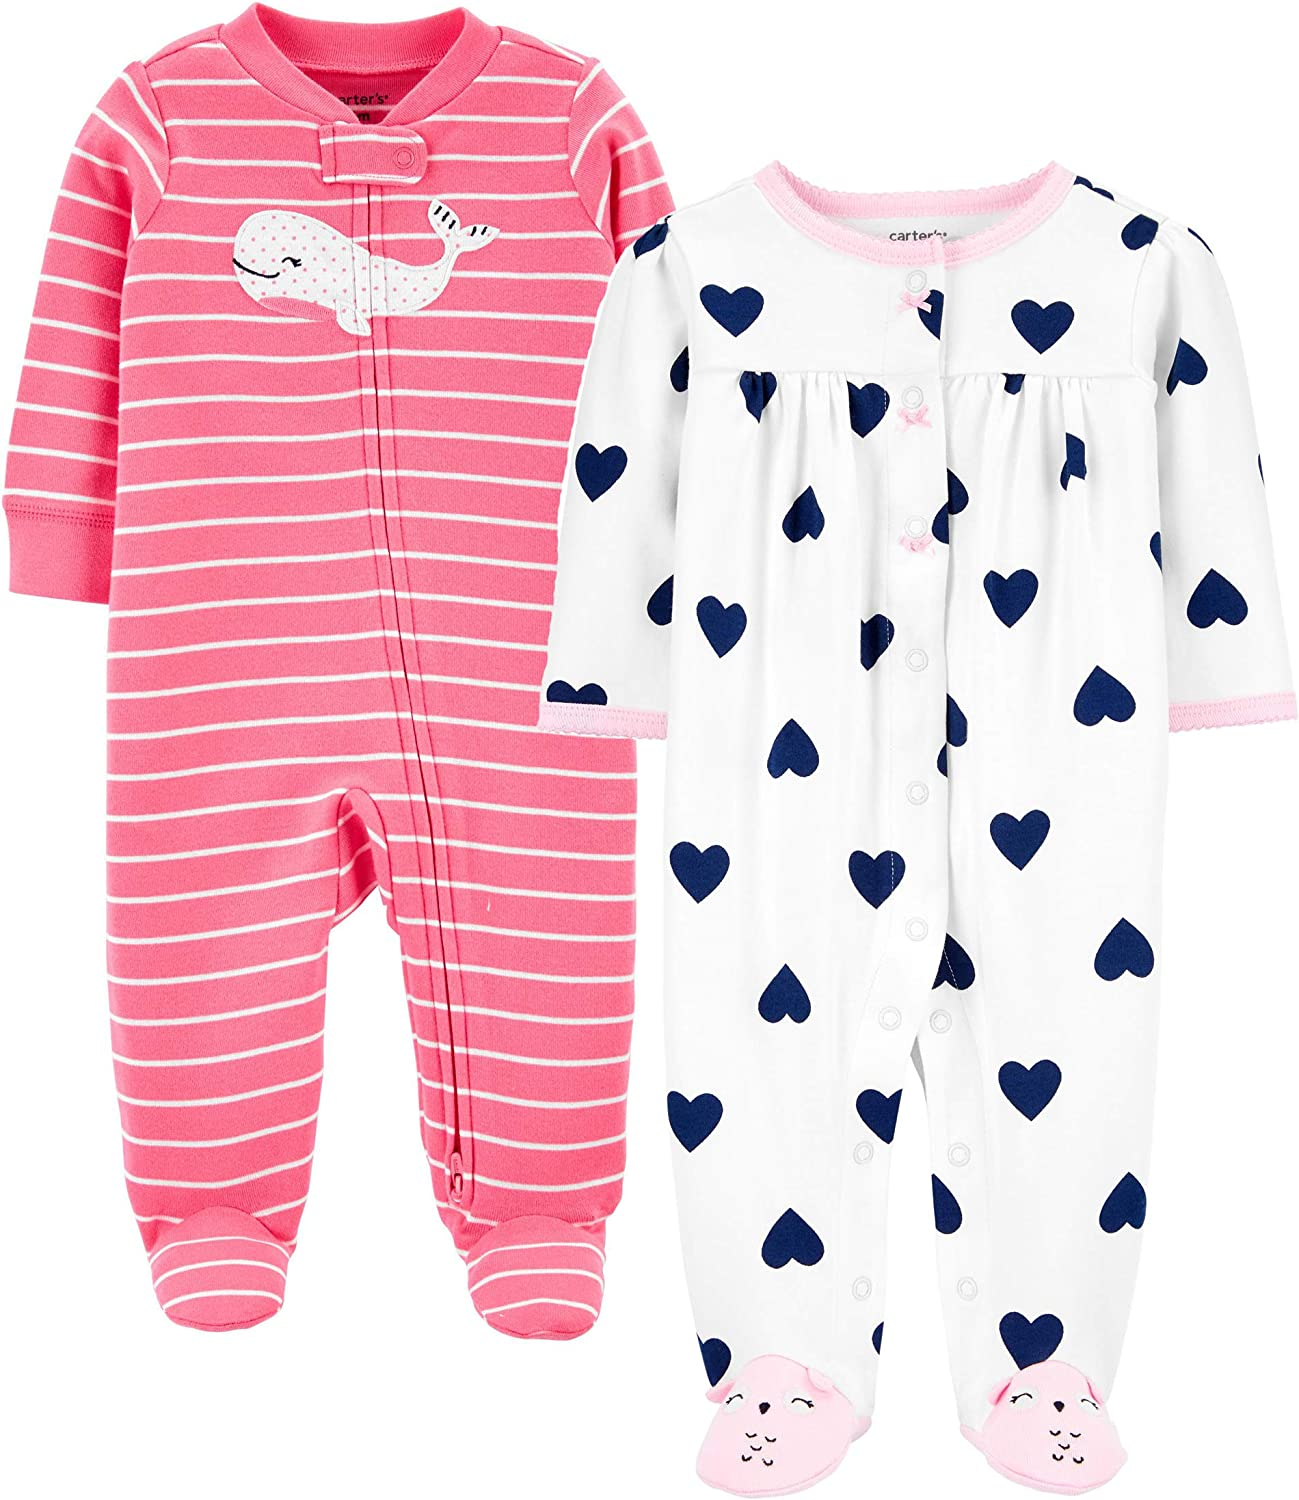 Blue Cherry Carters Baby Girls Snap Up Cotton Sleep /& Play 9 Months